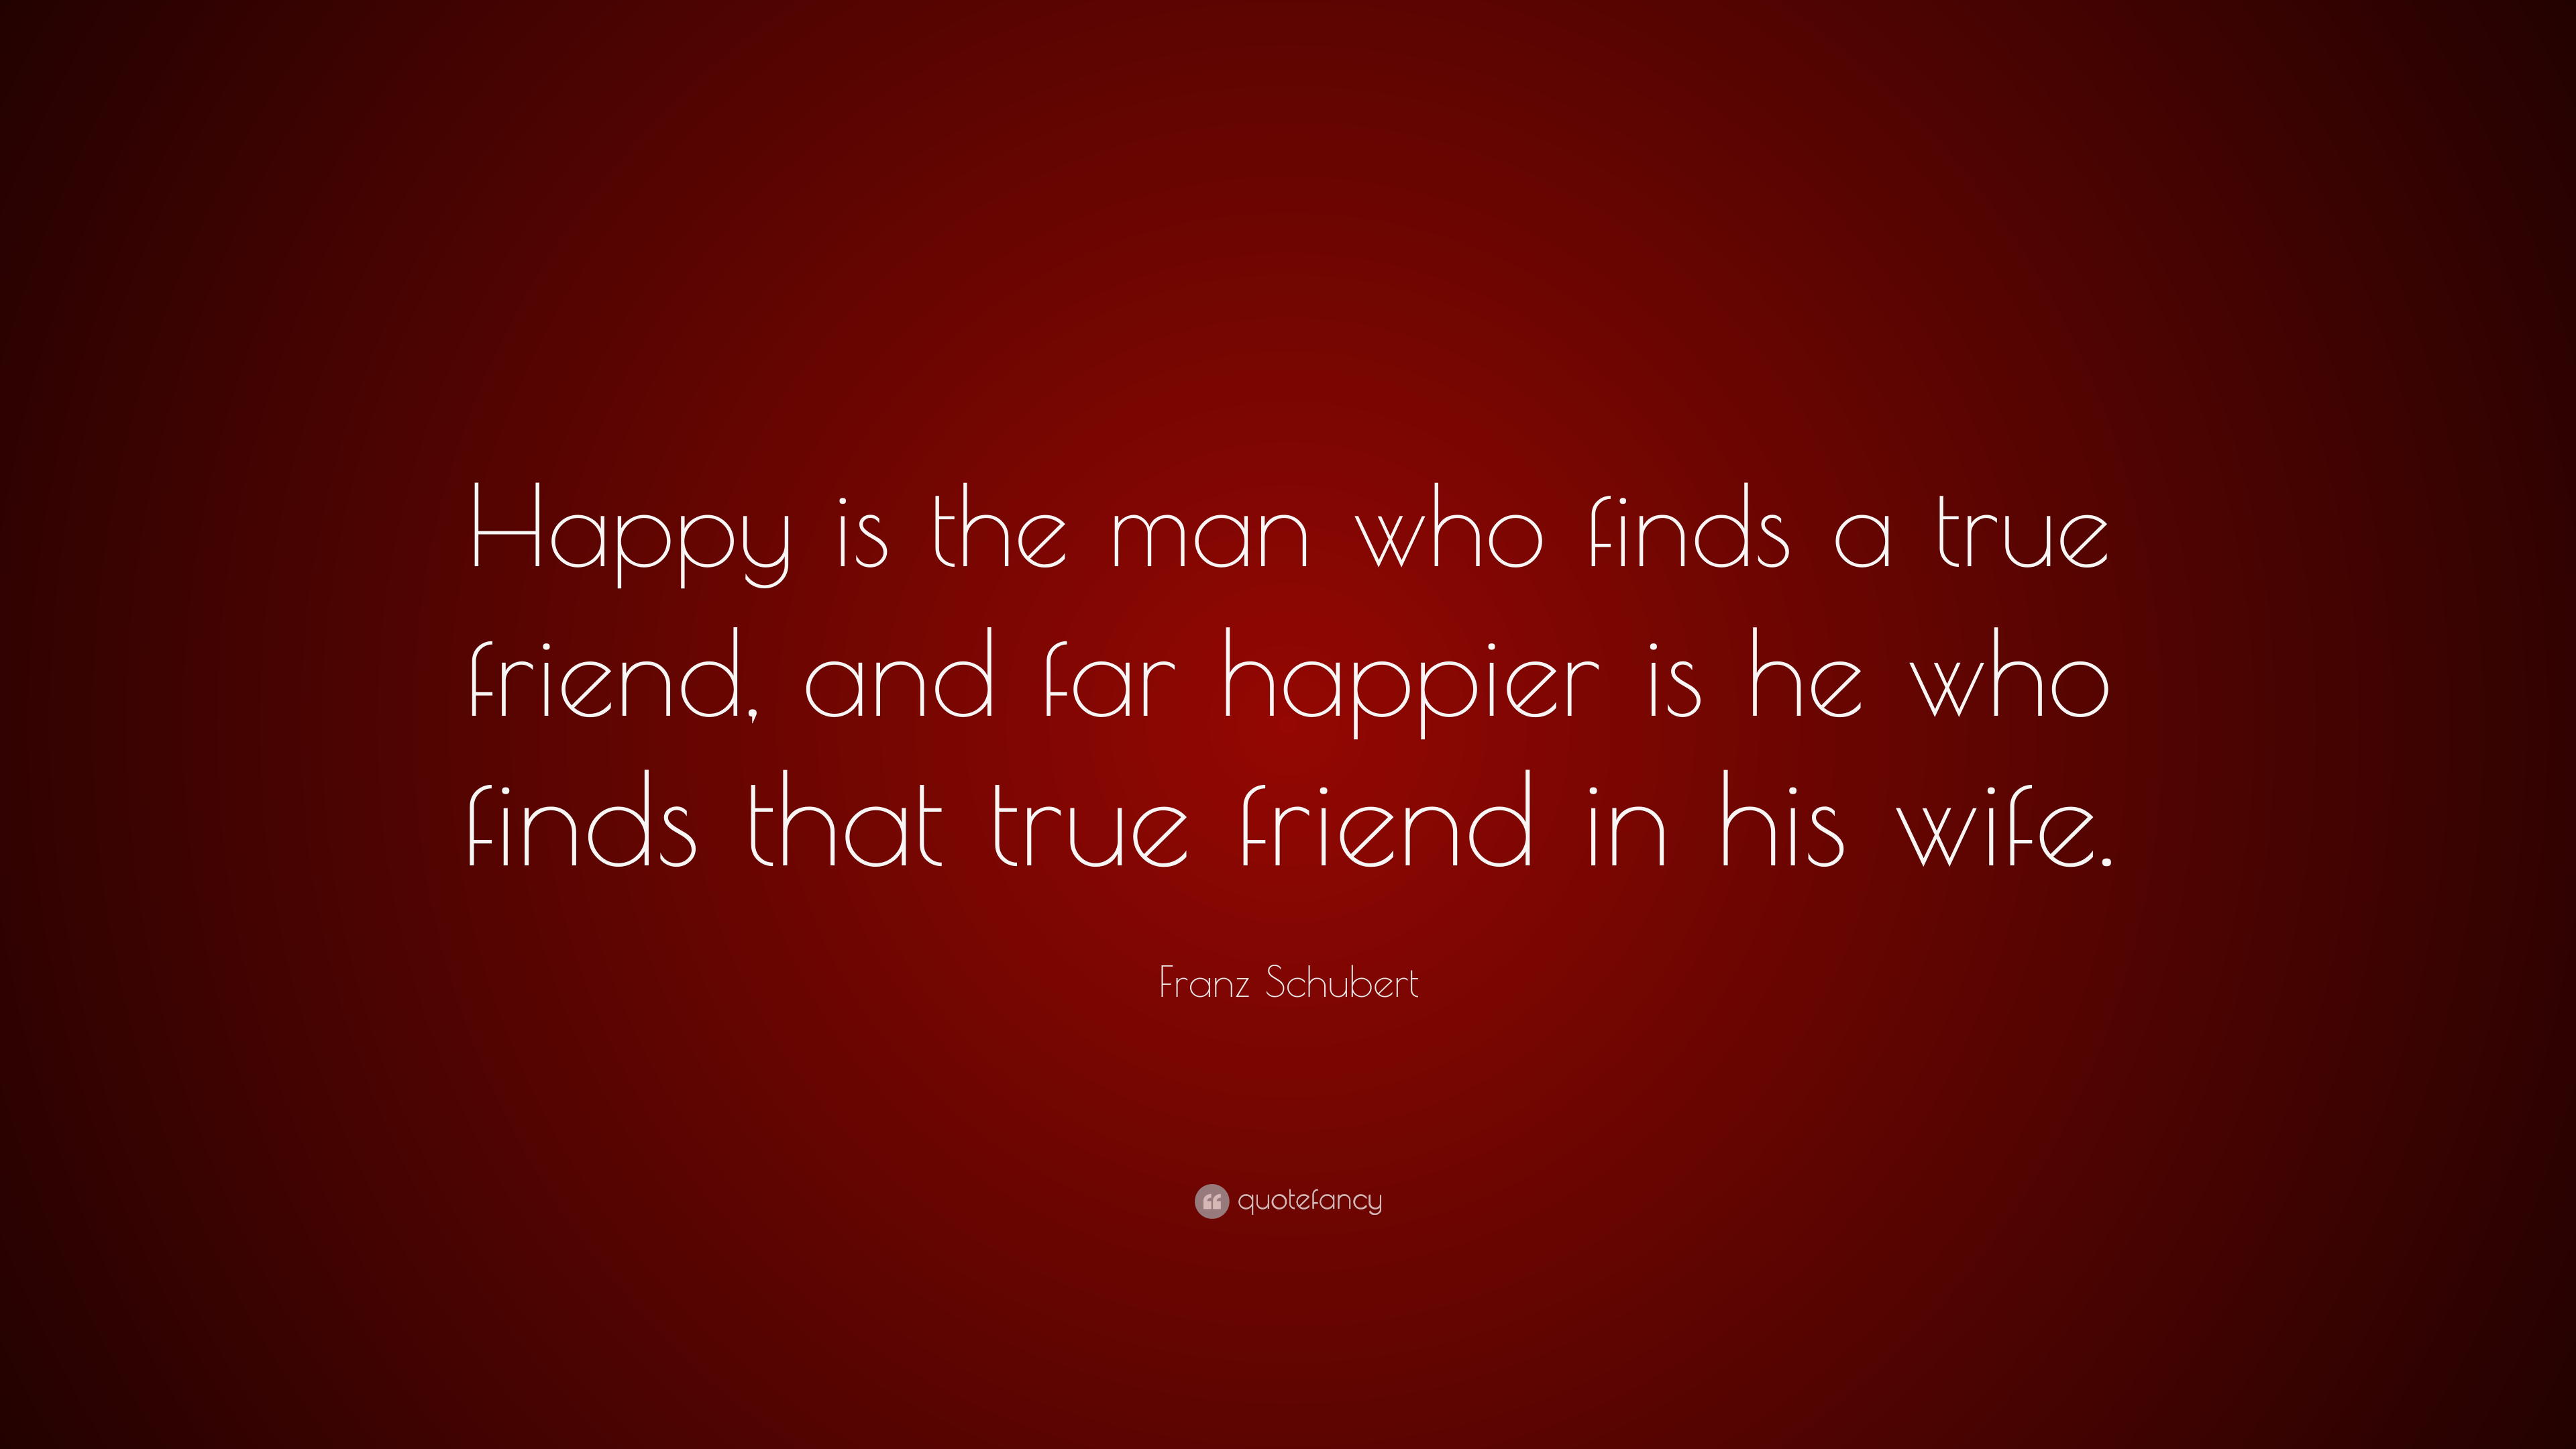 Image of: Sayings Franz Schubert Quote happy Is The Man Who Finds True Friend And Ndtvcom Franz Schubert Quote happy Is The Man Who Finds True Friend And